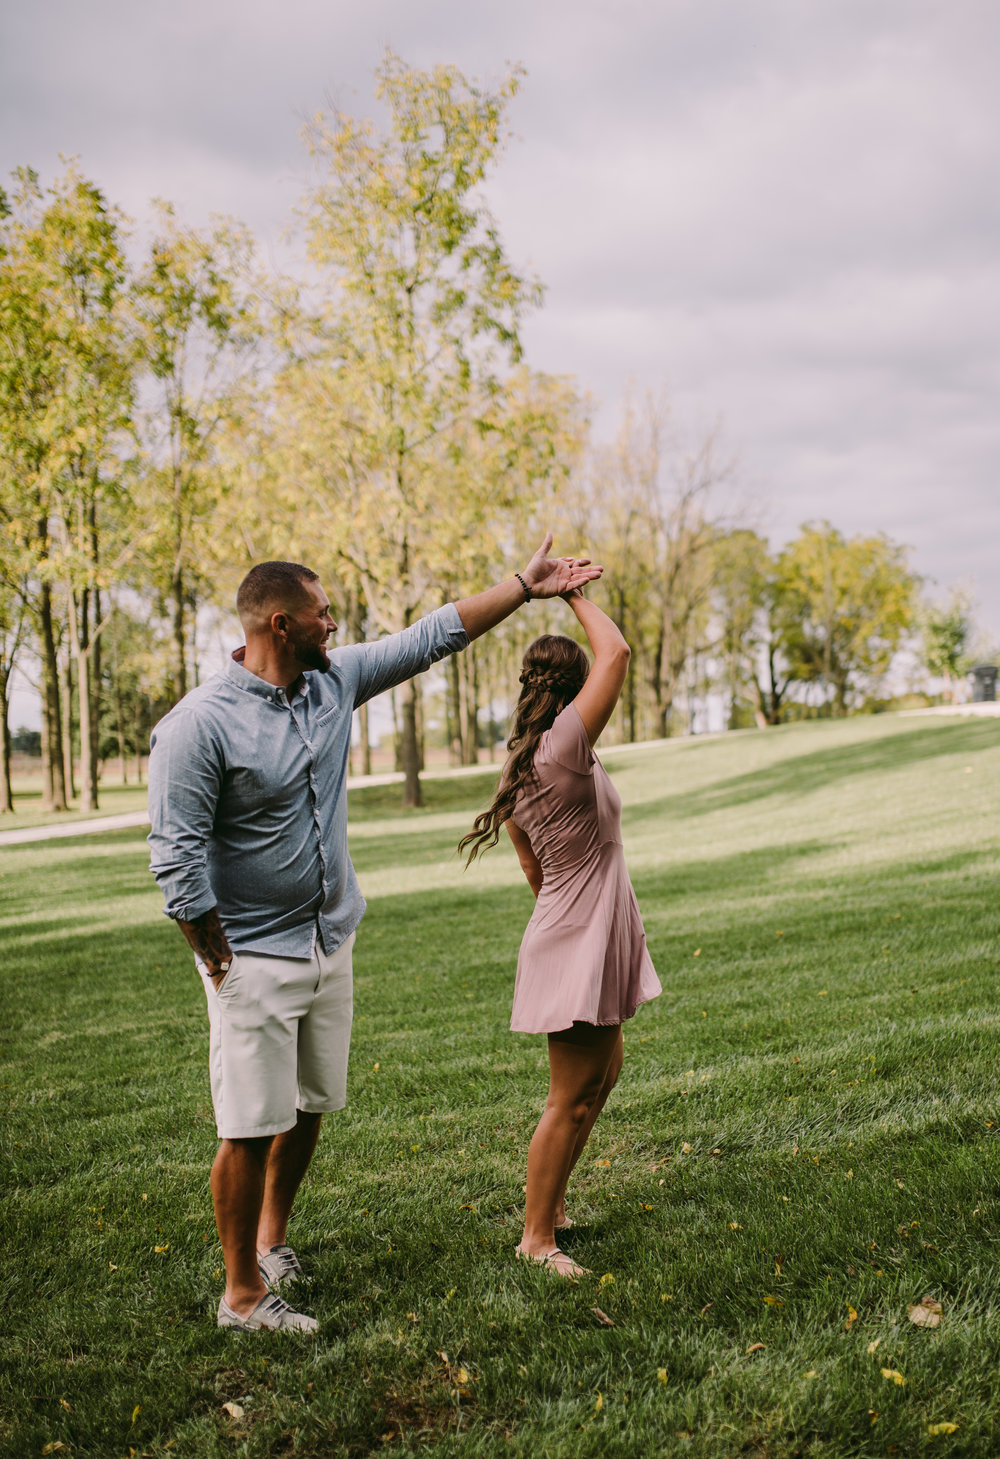 Brooke&Blake_EngagementSession_October2018_SamanthaRosePhotography_018.JPG